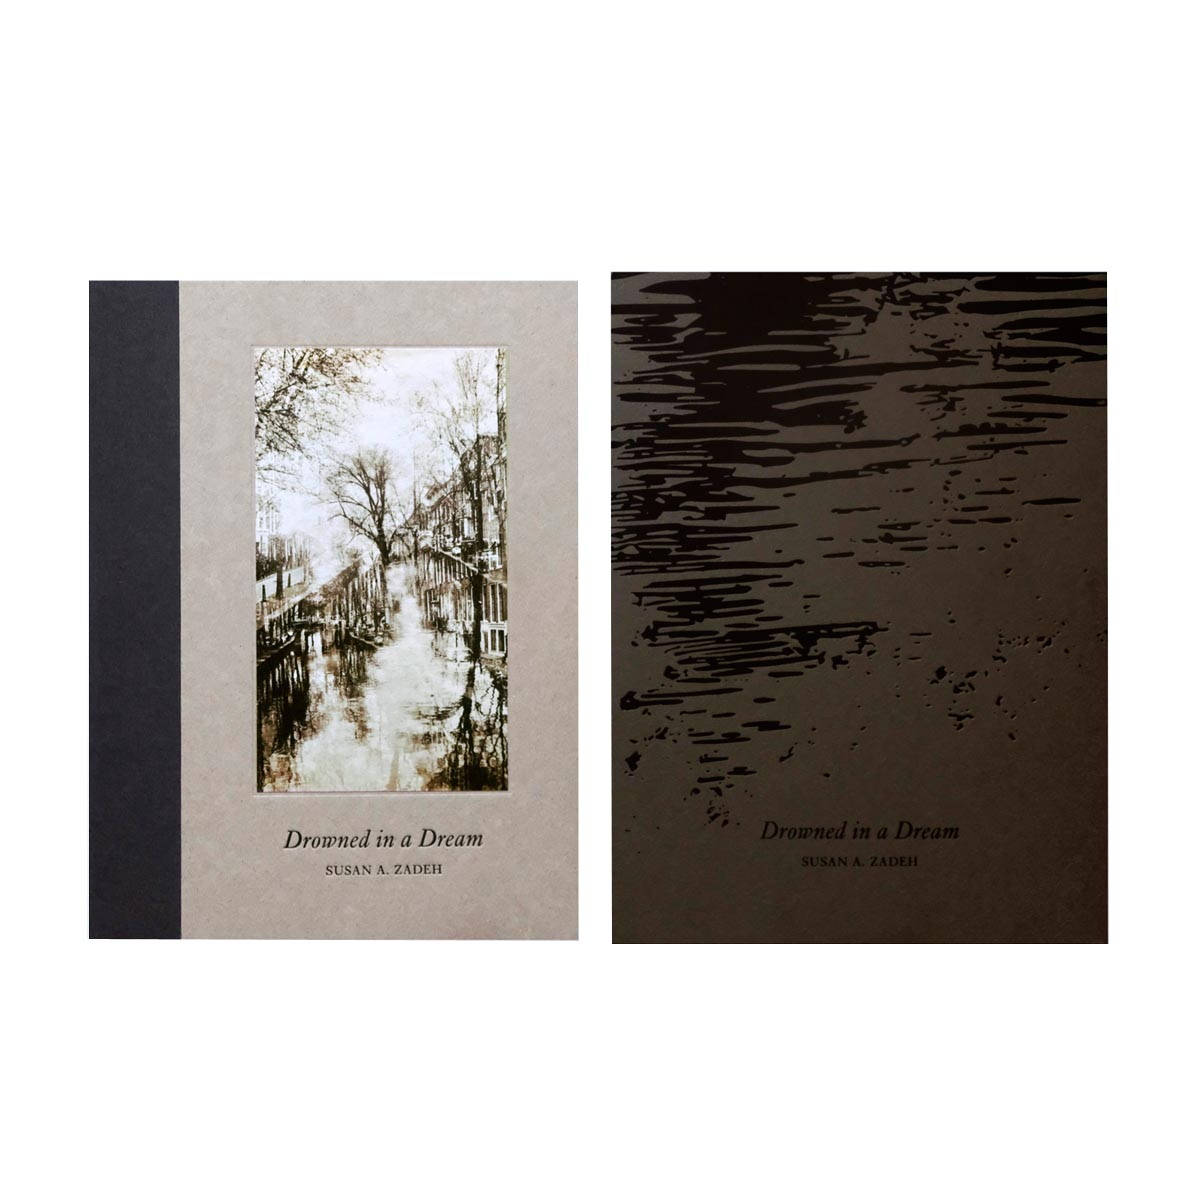 Susan A. Zadeh: Drowned in a Dream (Deluxe Limited Edition with 12 Prints)